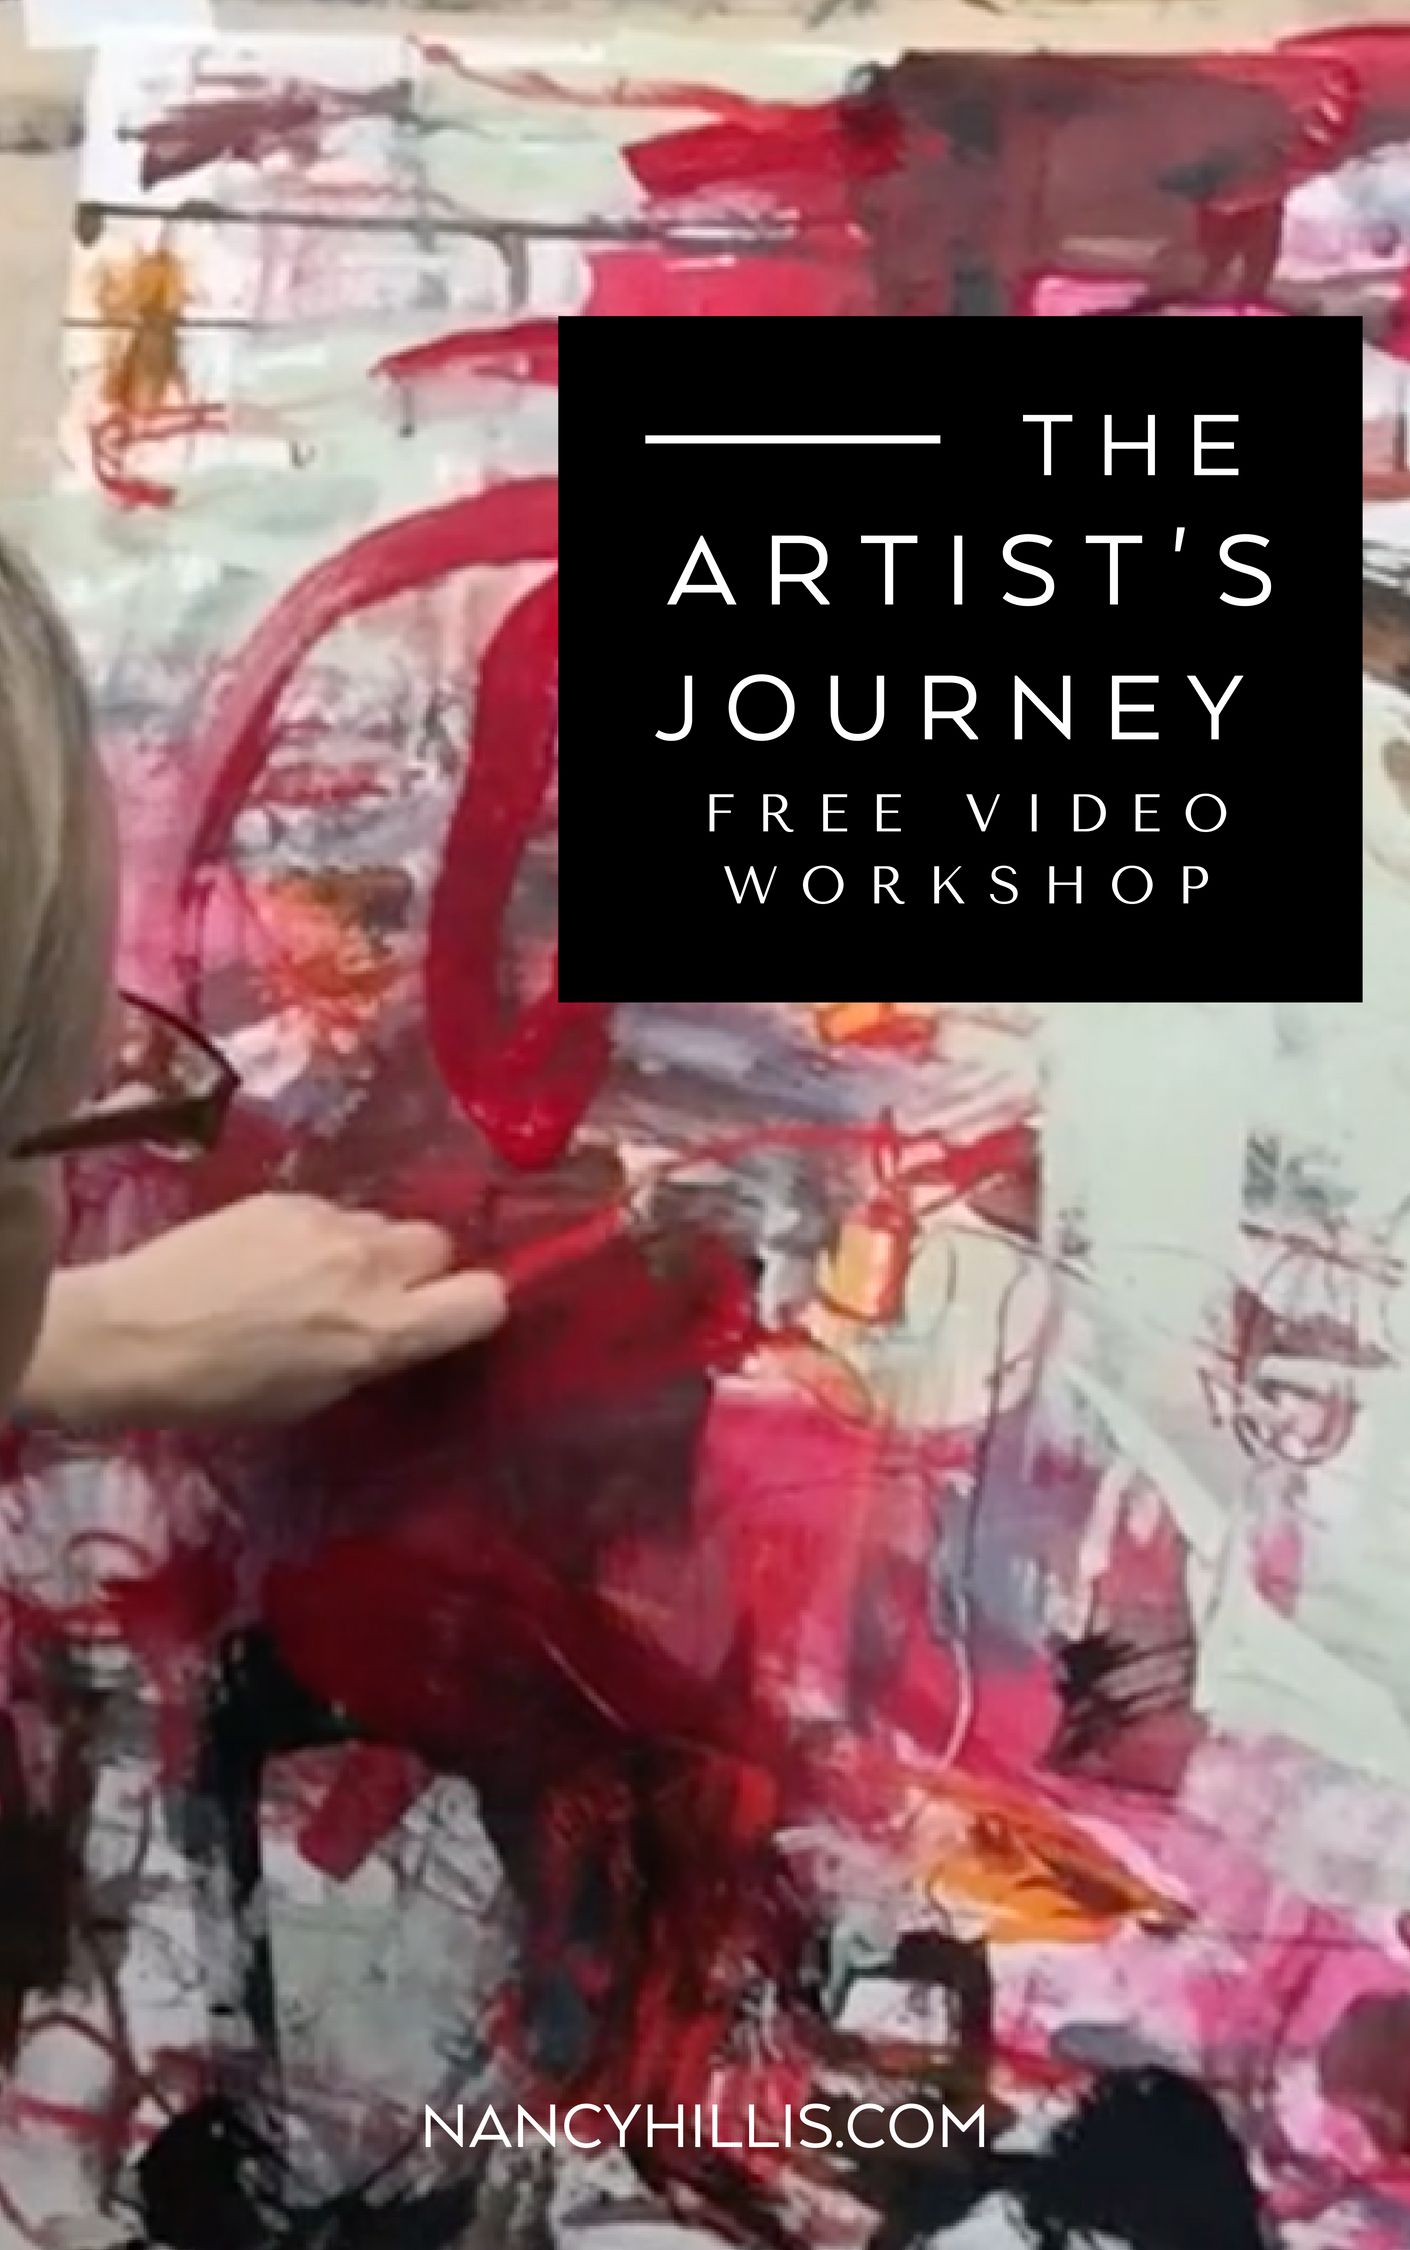 Free Video Workshop Create Your Deepest Abstract Art Express You